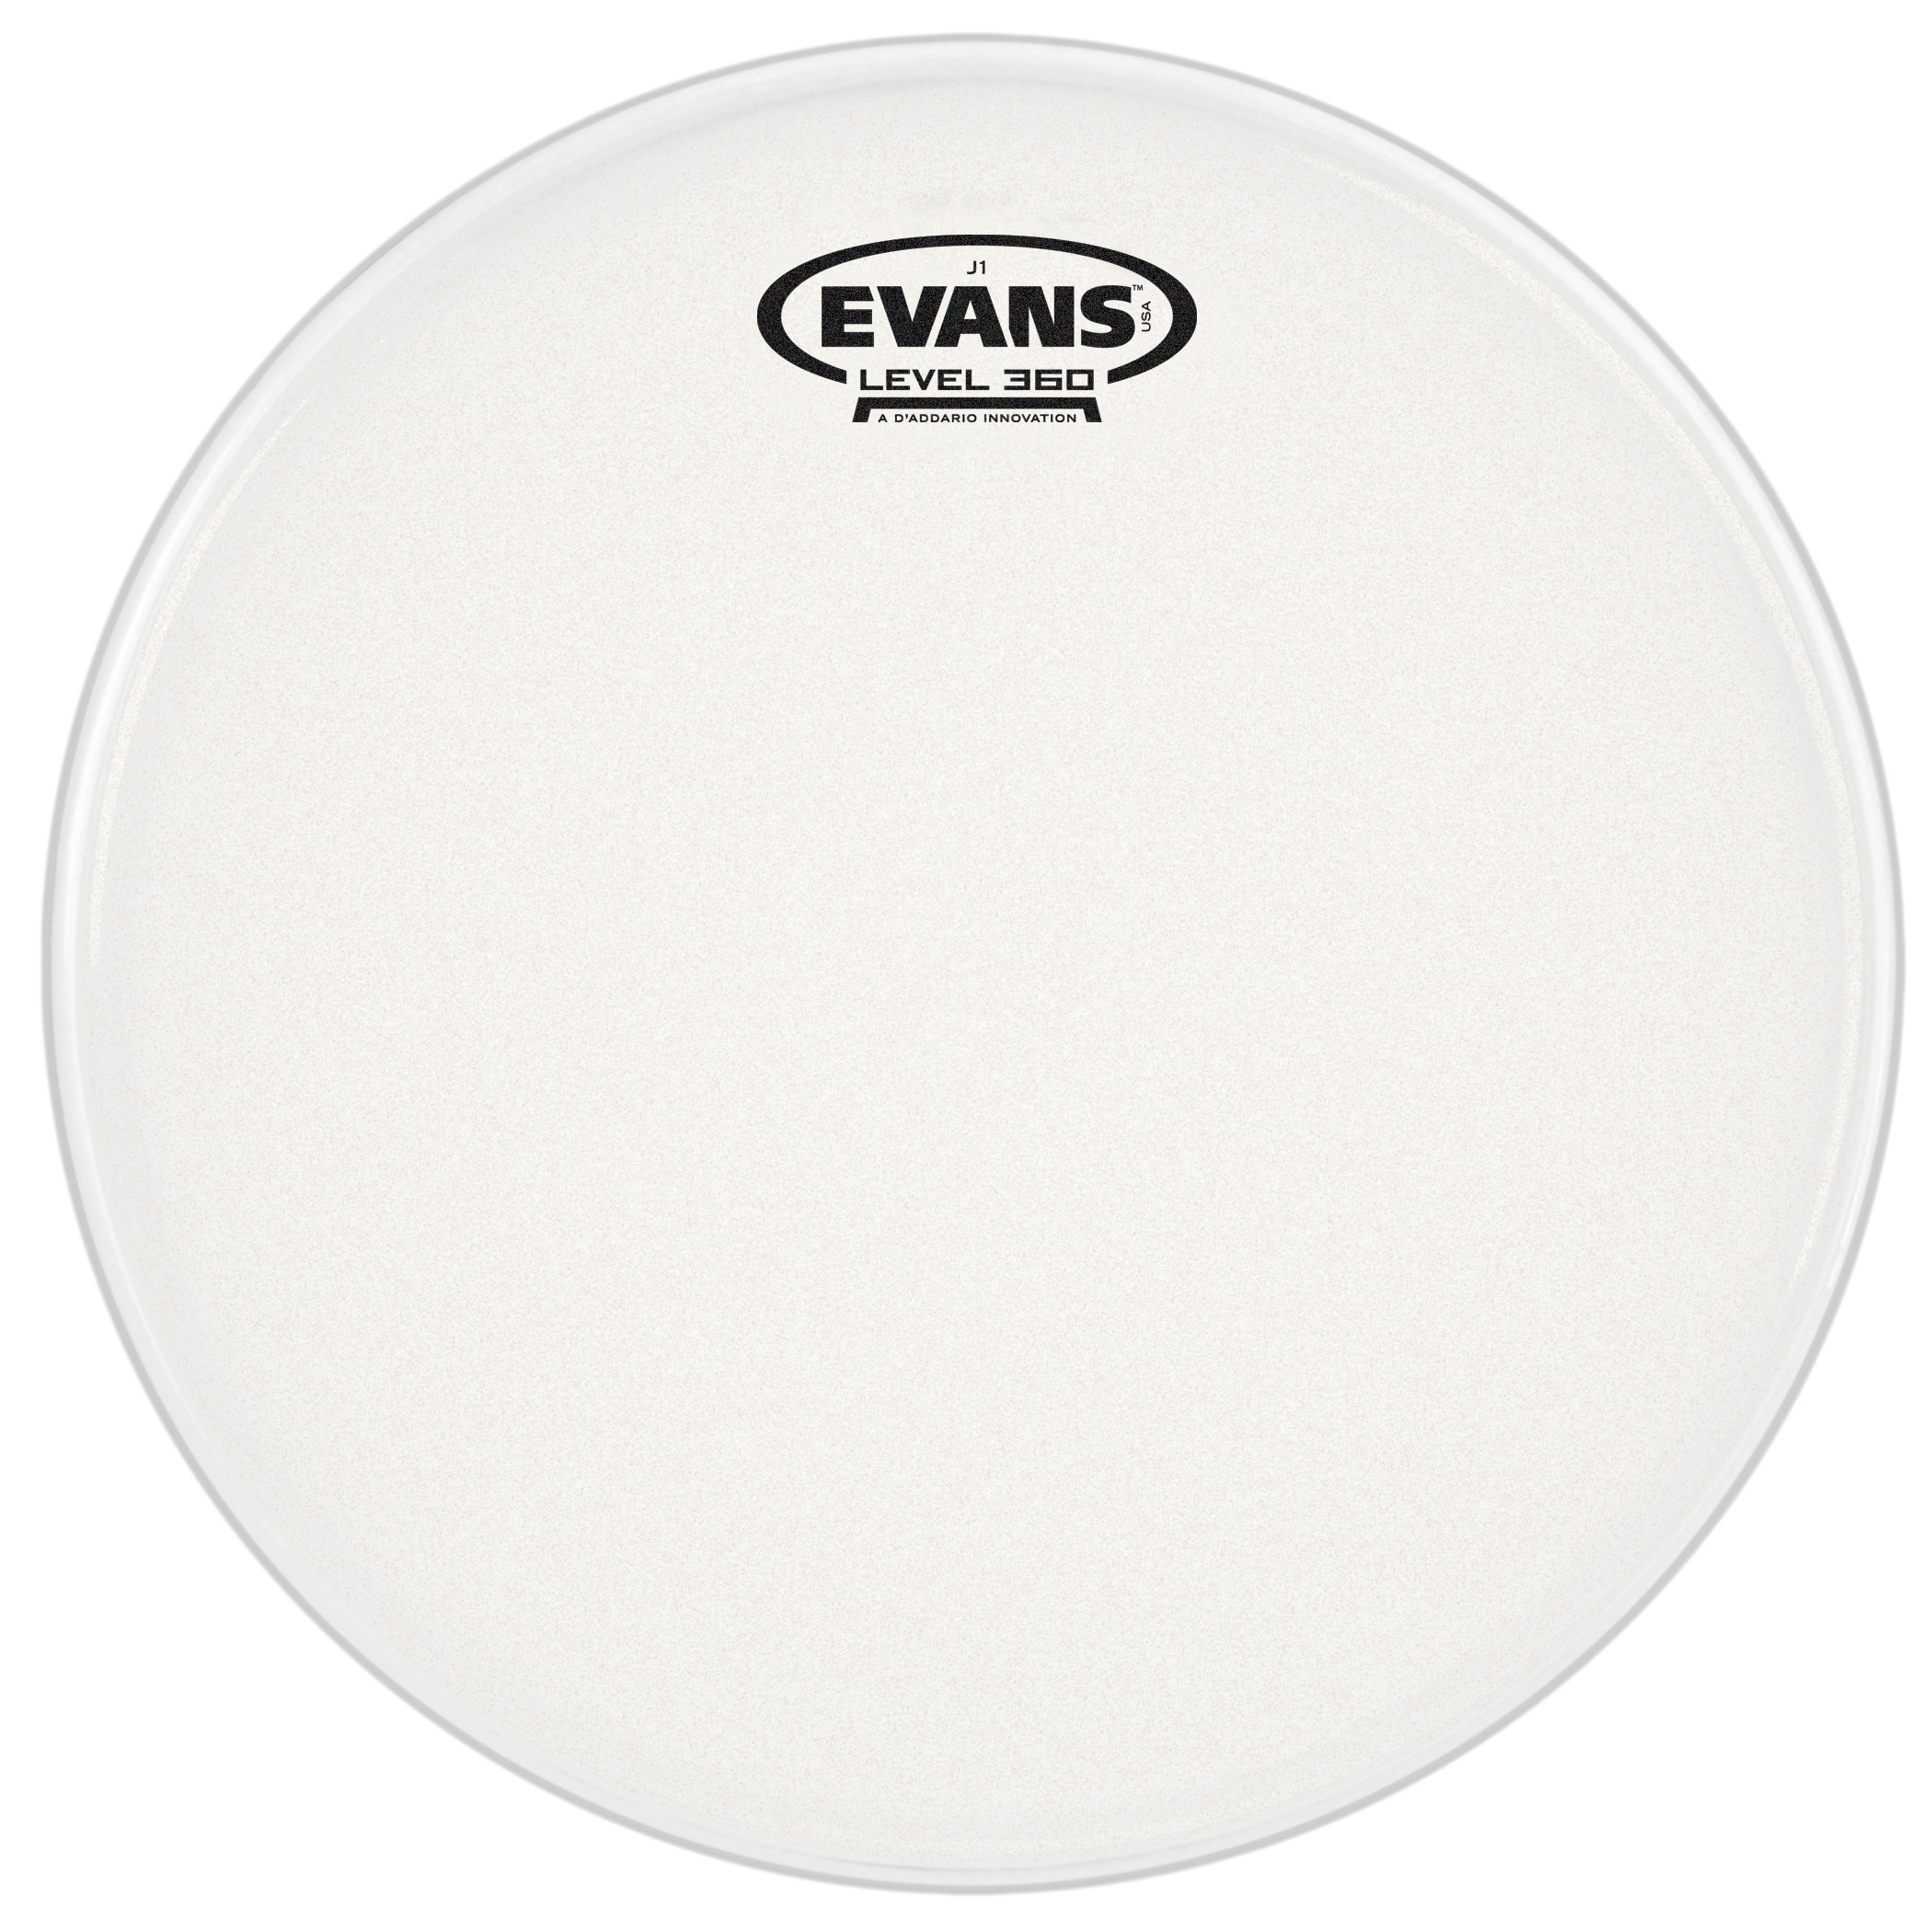 "Evans 16"" J1 Etched Head"